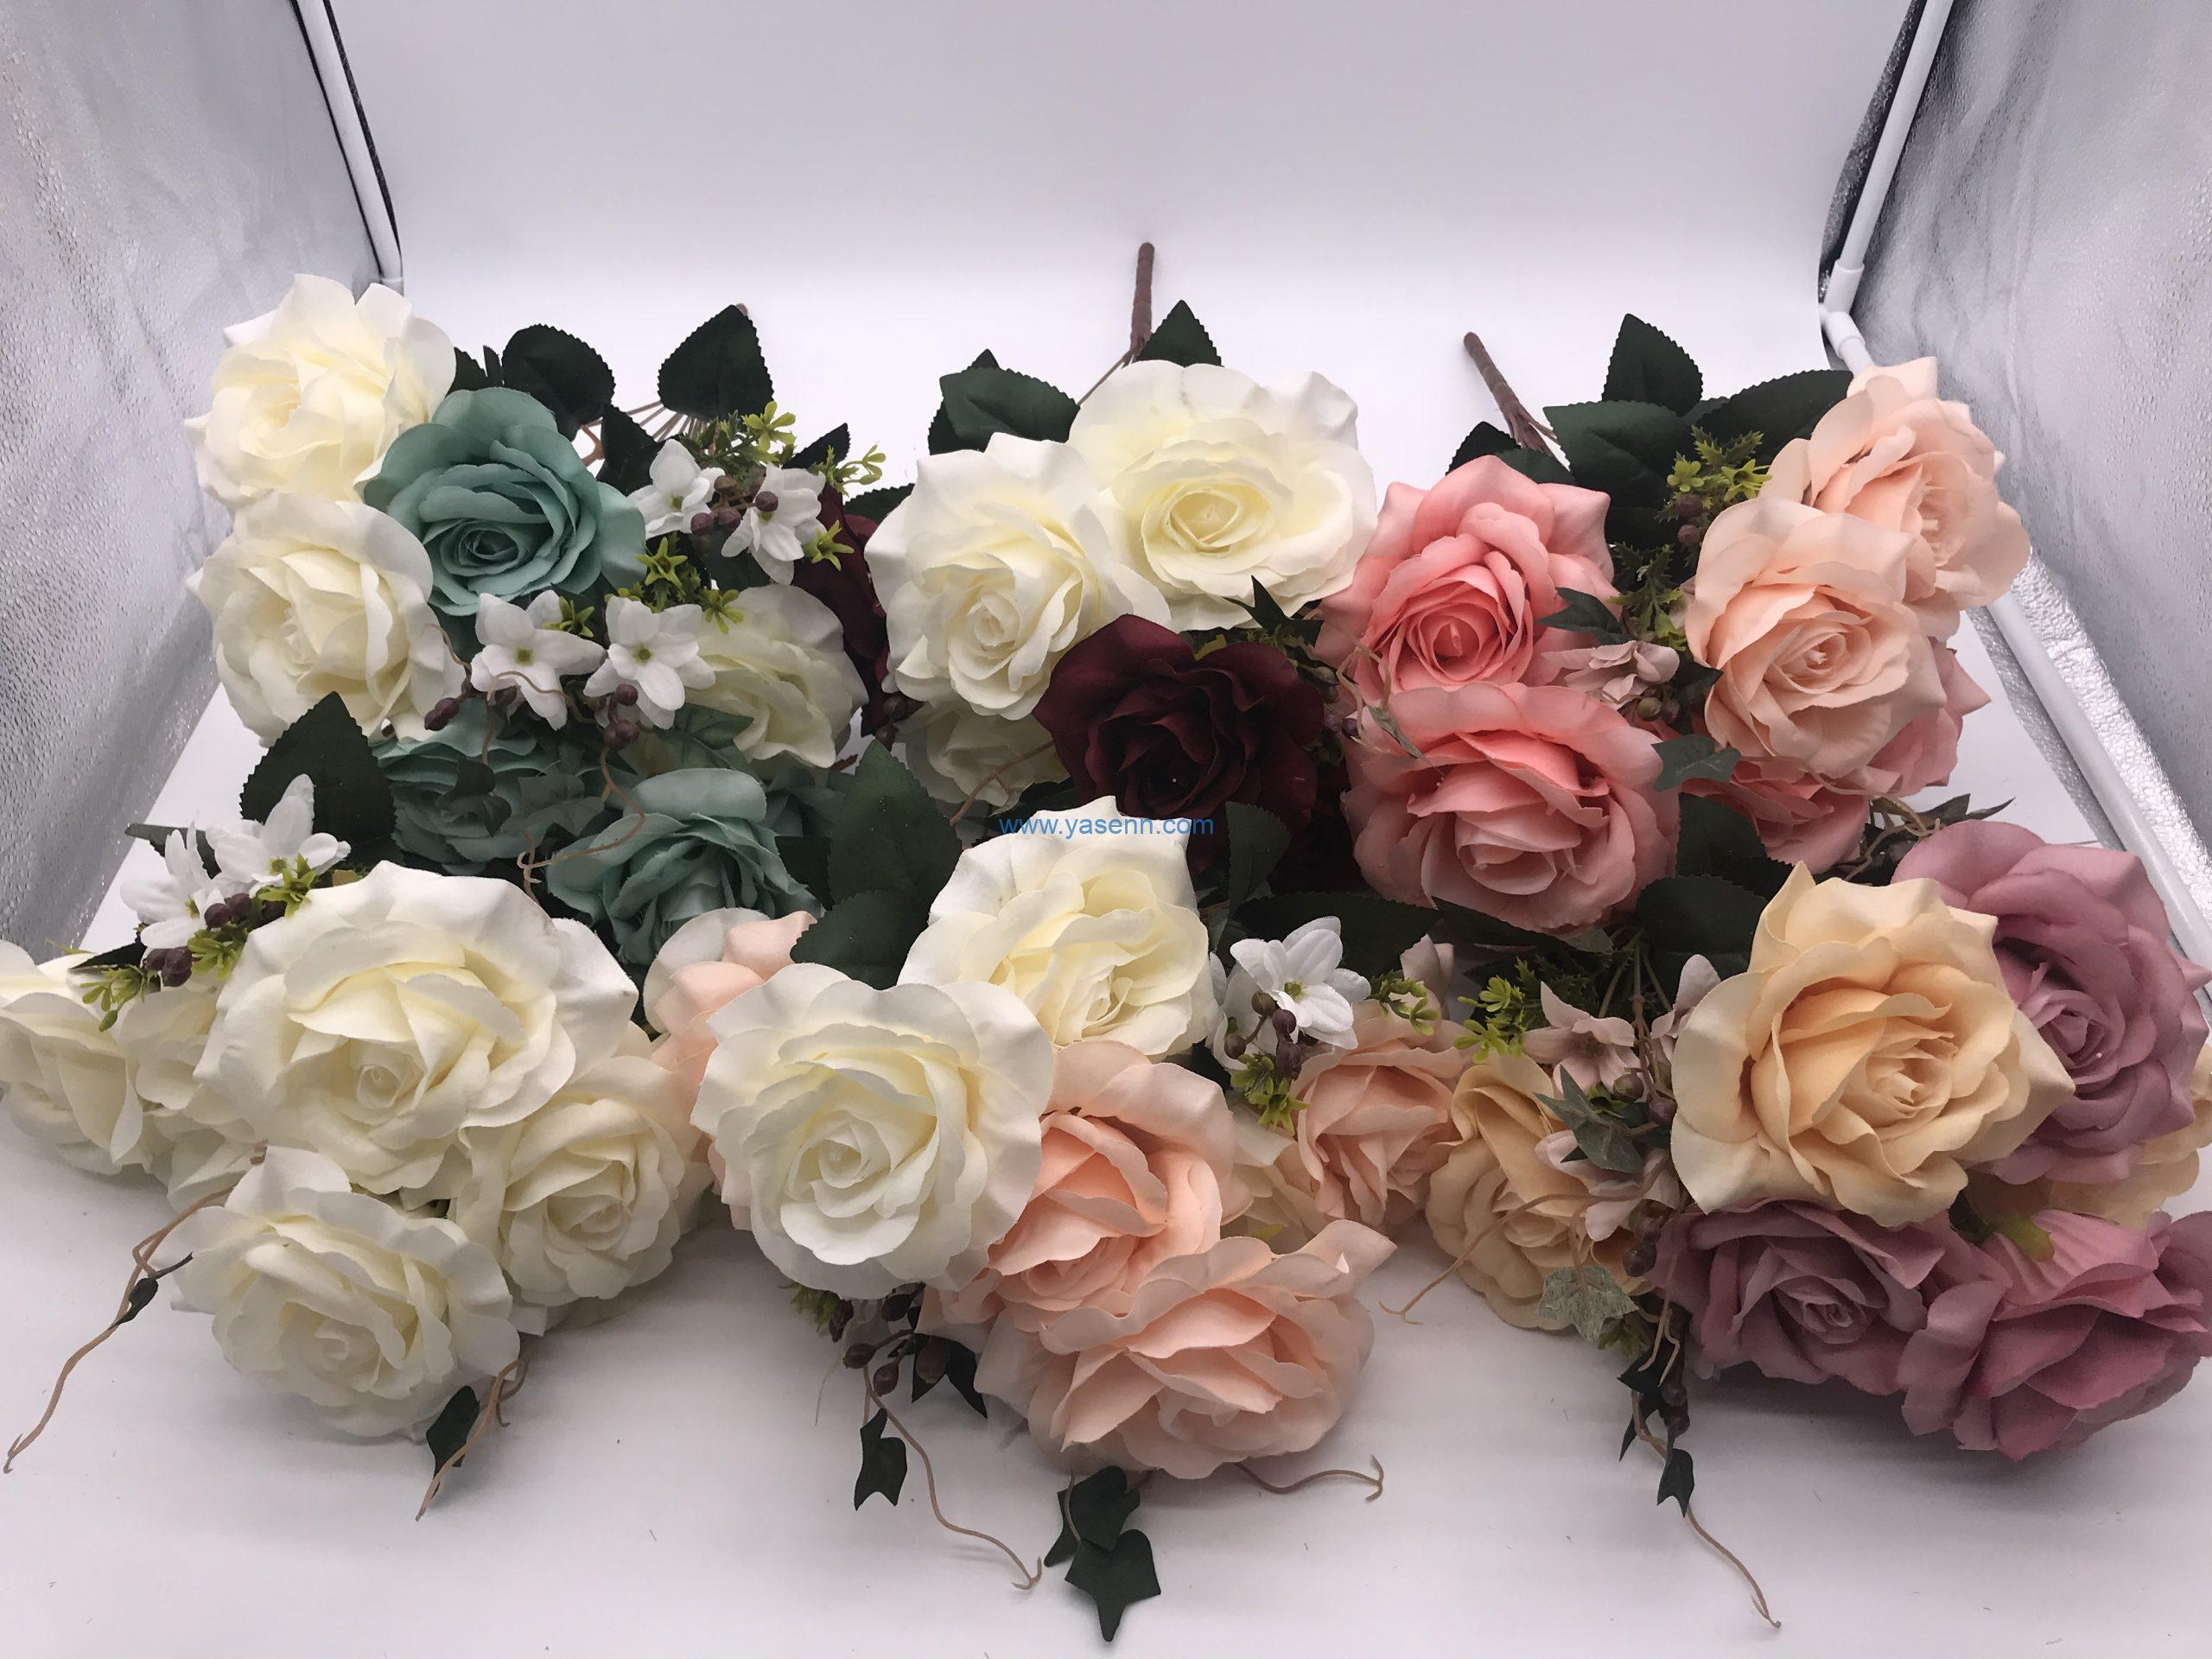 Artificial Flowers 11 Branches Rose Present for Important People Glorious Moral Office Coffee and Wedding